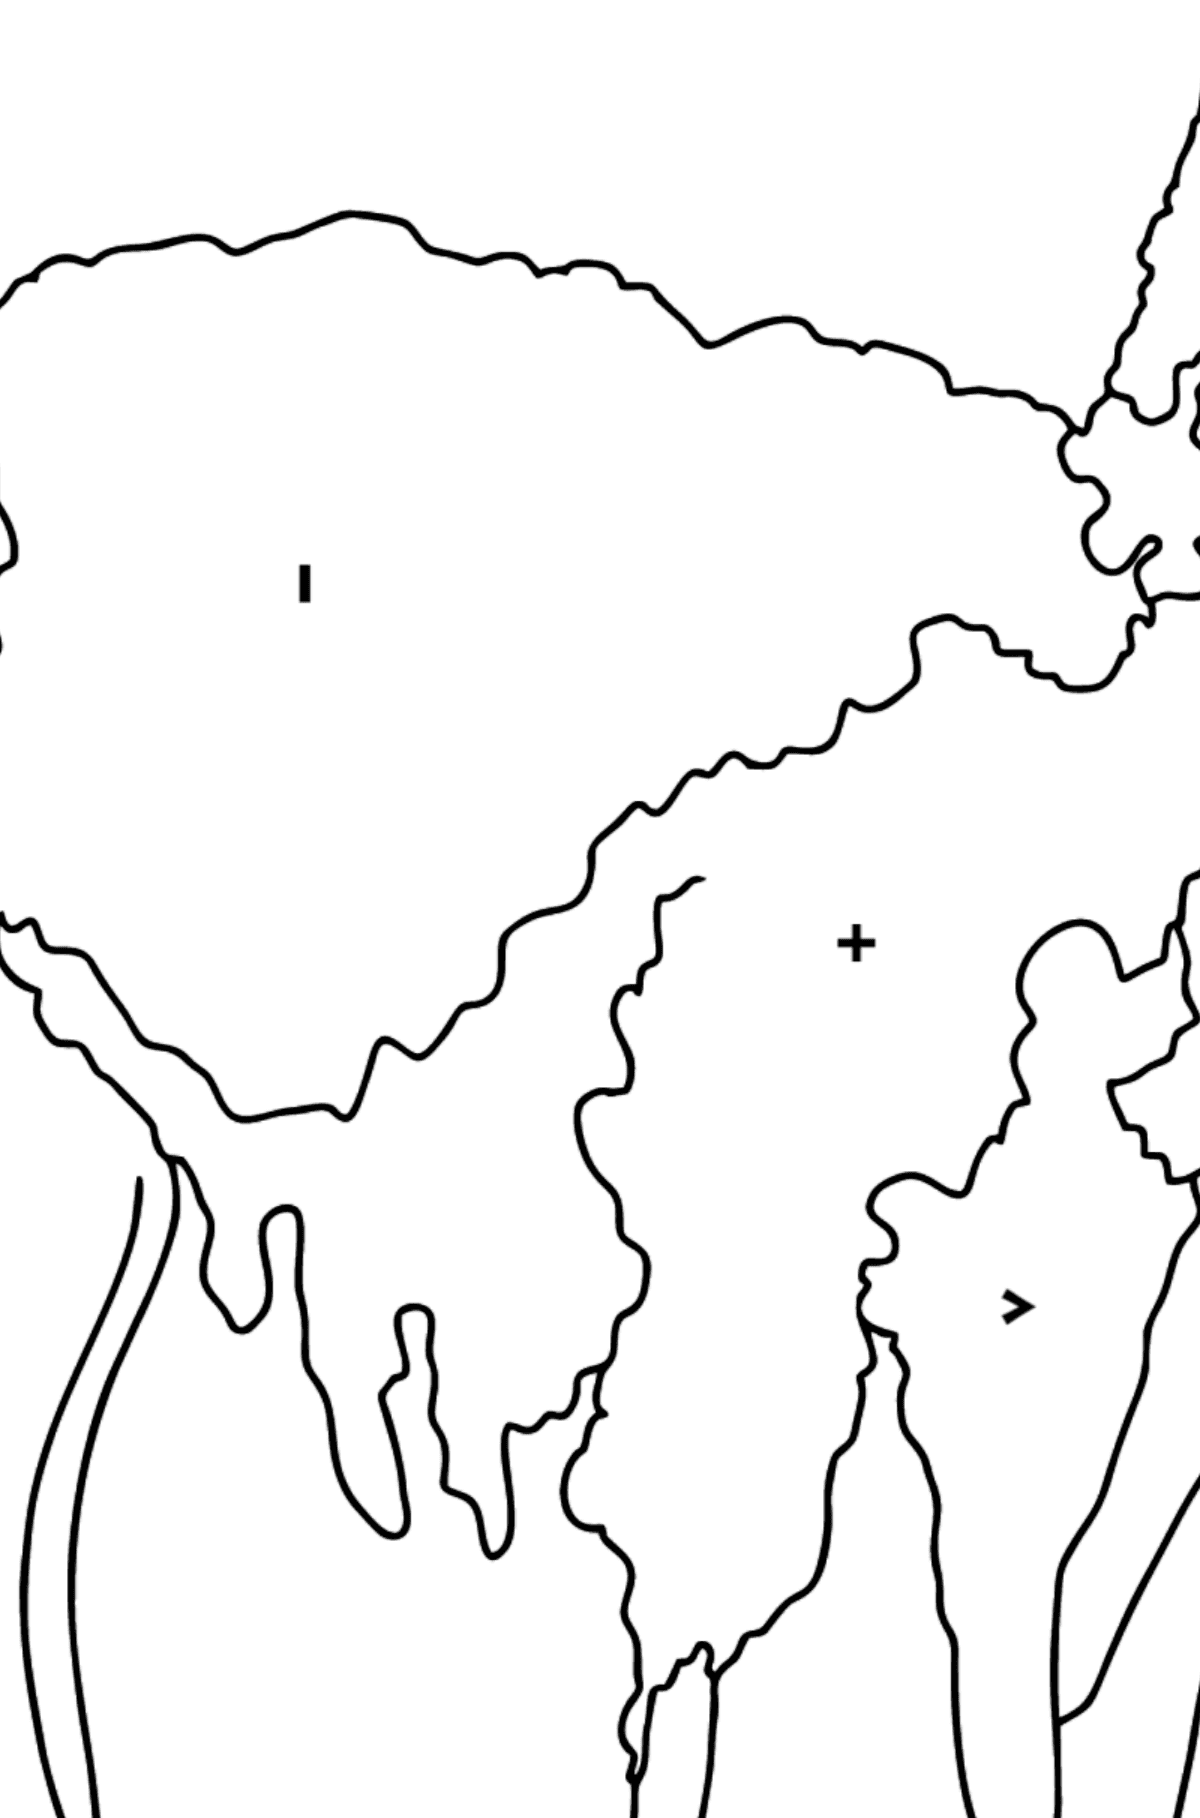 Coloring Page - A Lama is Inspecting the Area - Coloring by Symbols and Geometric Shapes for Kids